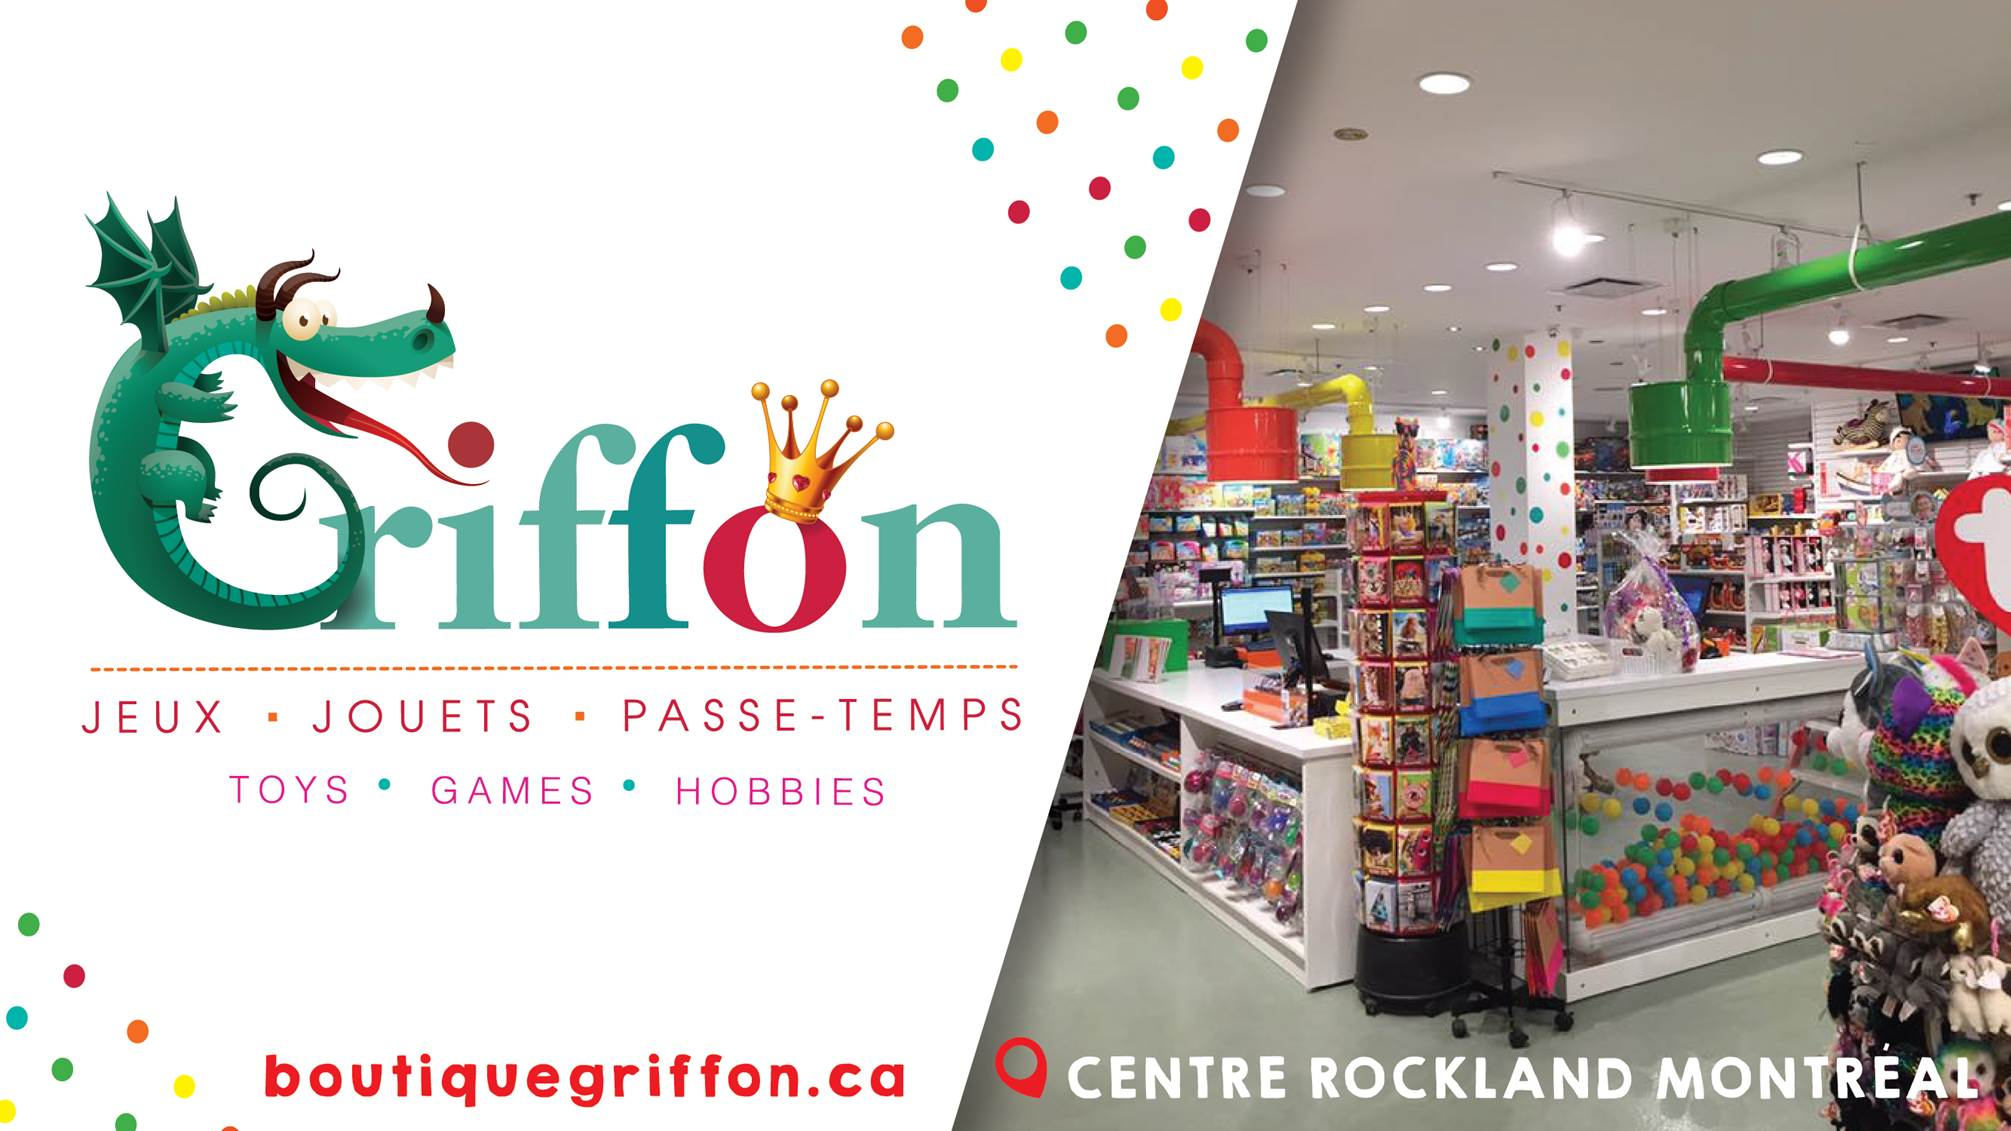 Win $100 at Boutique Griffon!